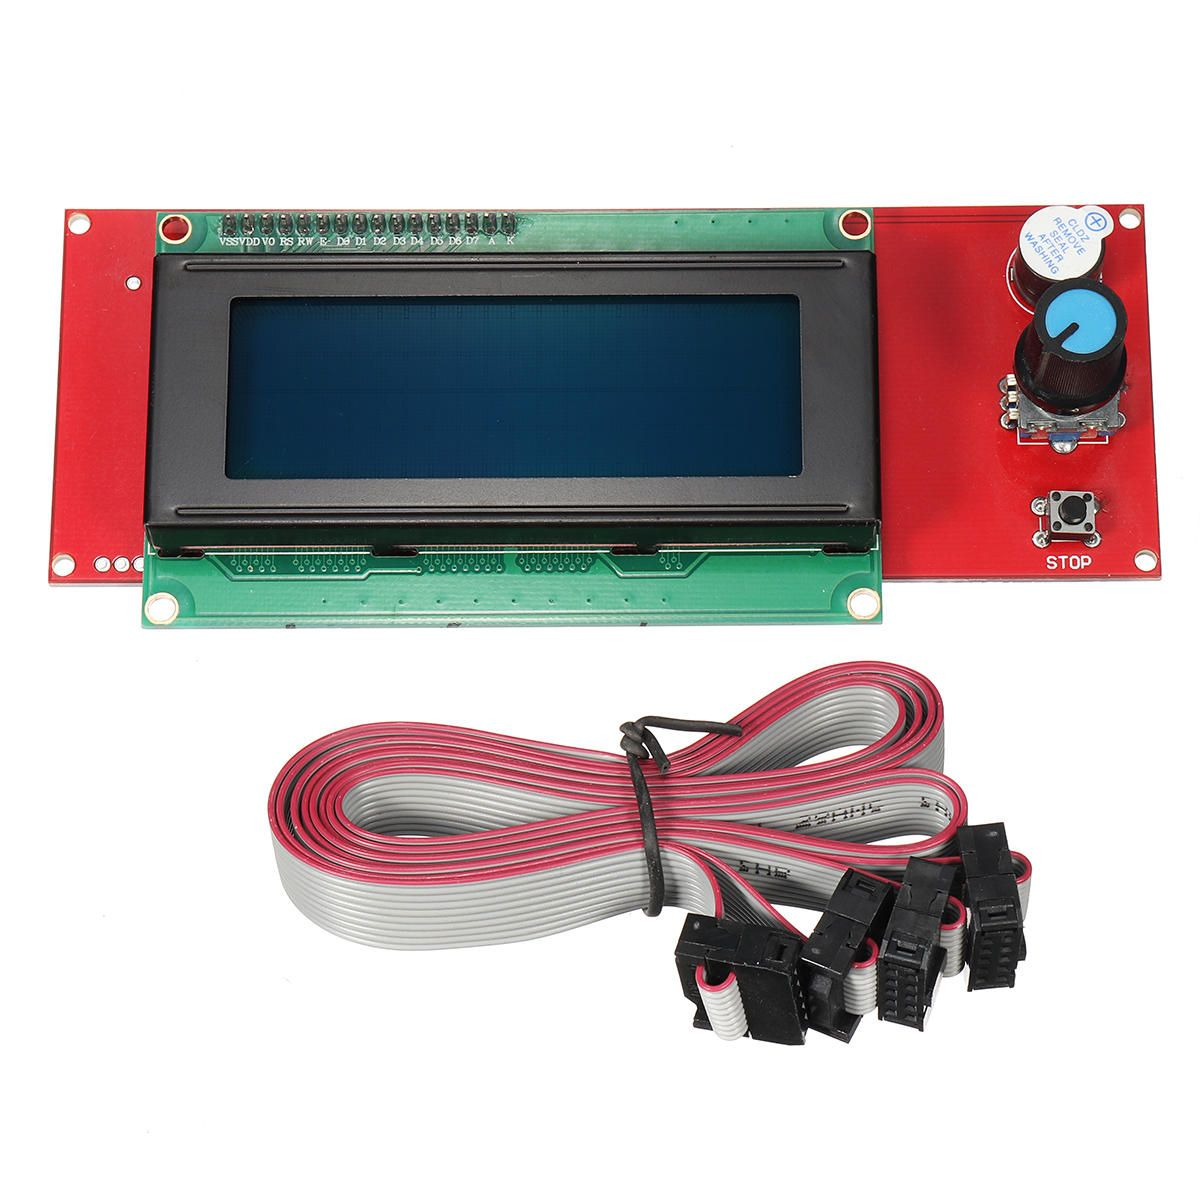 Tevo 3d Printer Part 2004 Lcd Smart Display Controlle Adapter For Ramps 1 4 Reprap With Cables Tevo For Printer Adapter Ramps With Repr Ends 3d Pr